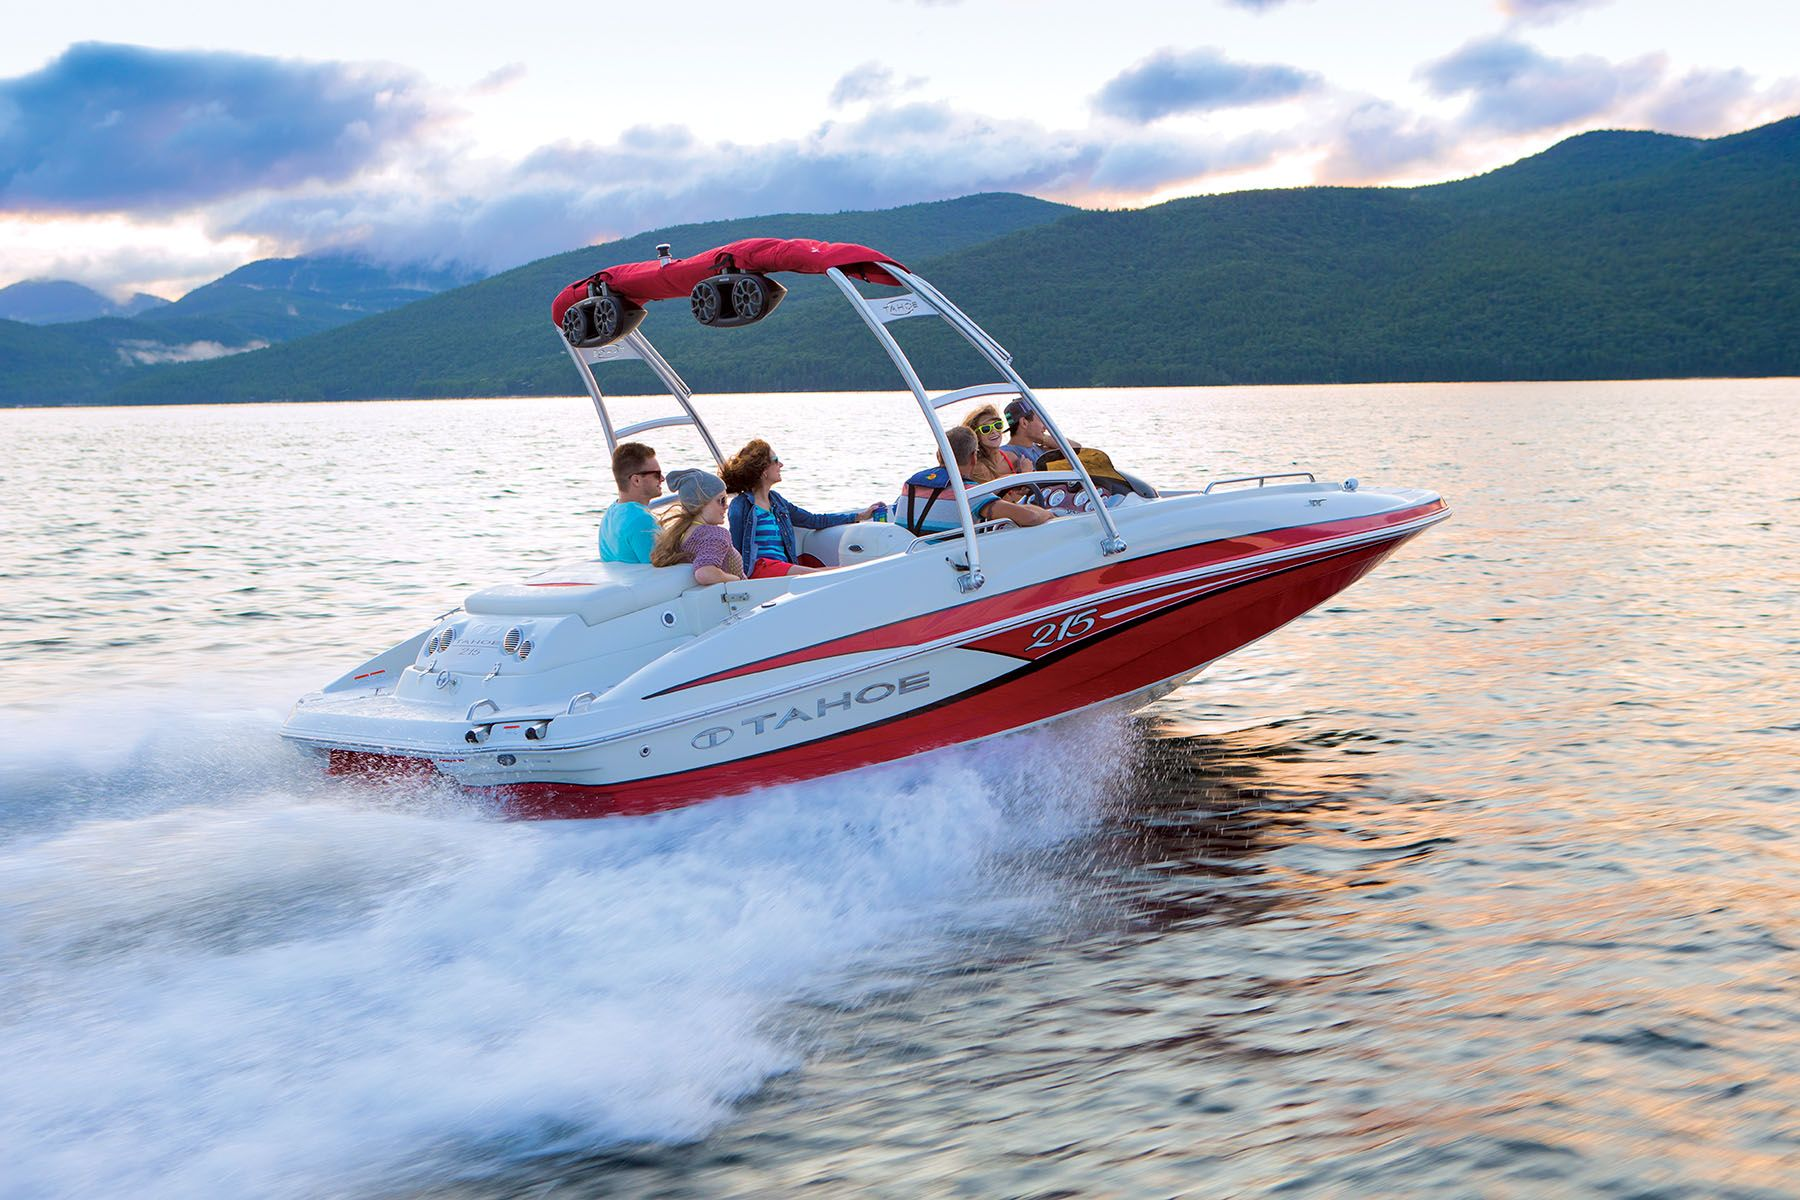 Tahoe 215 Xi Deck Boat Available through Springfield Tracker